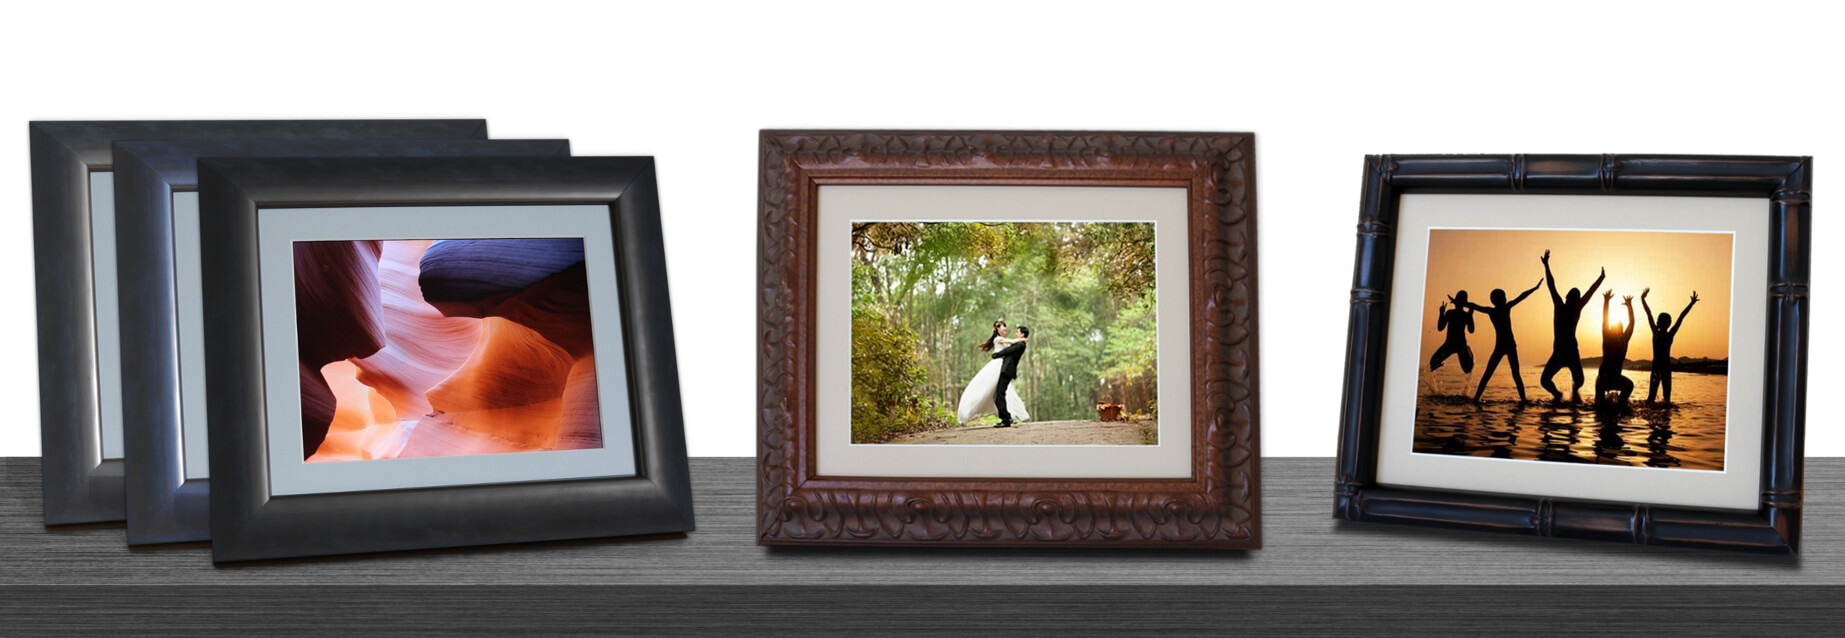 Digital Picture Frames for Wedding Photos